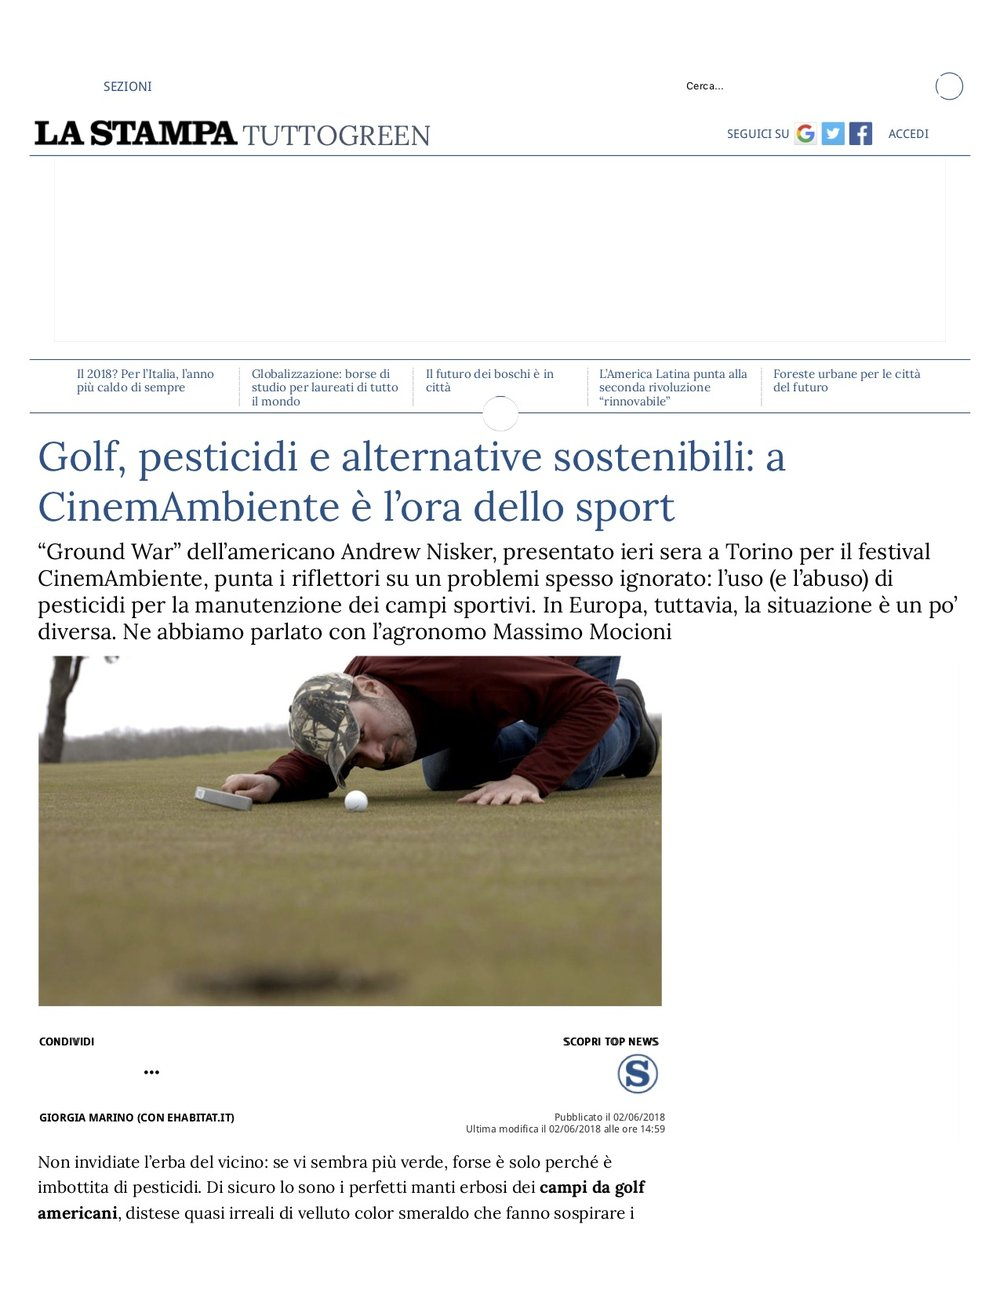 Golf, pesticidi e alternative sostenibili- a CinemAmbiente è l'ora dello sport - La Stampa.jpg